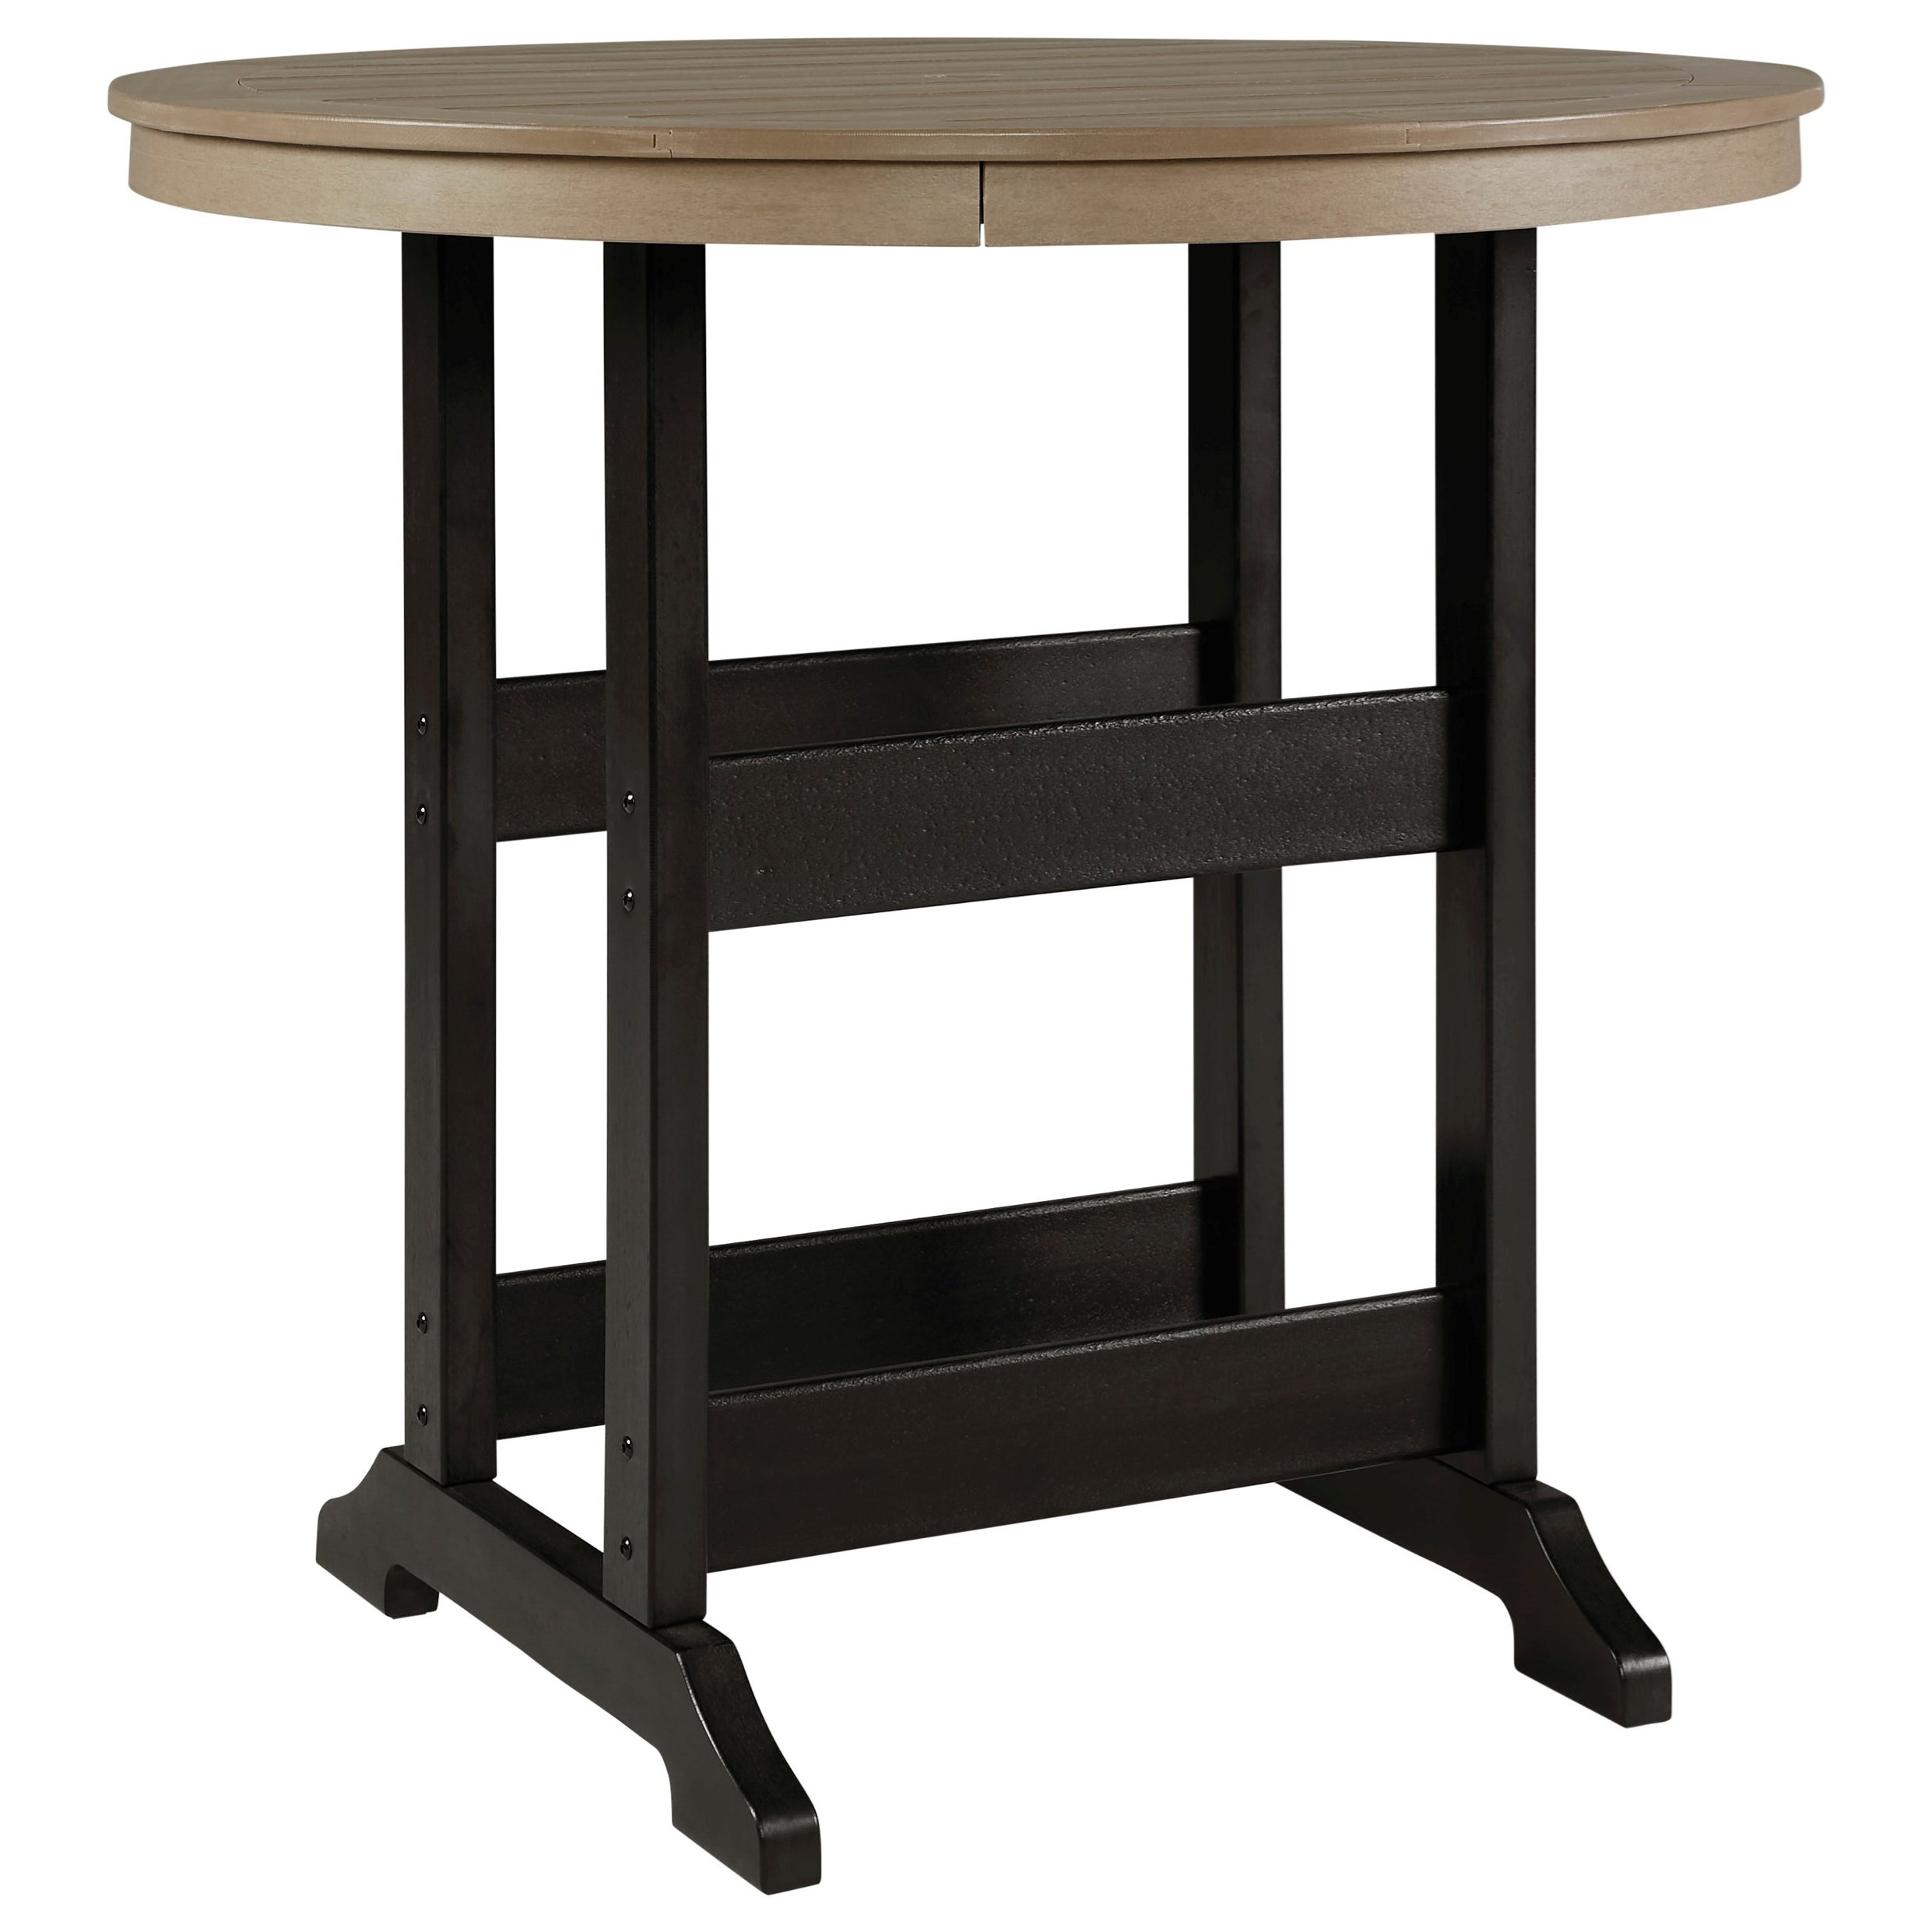 Fairen Trail Round Bar Table w/ Umbrella Option by Signature Design by Ashley at Miller Waldrop Furniture and Decor